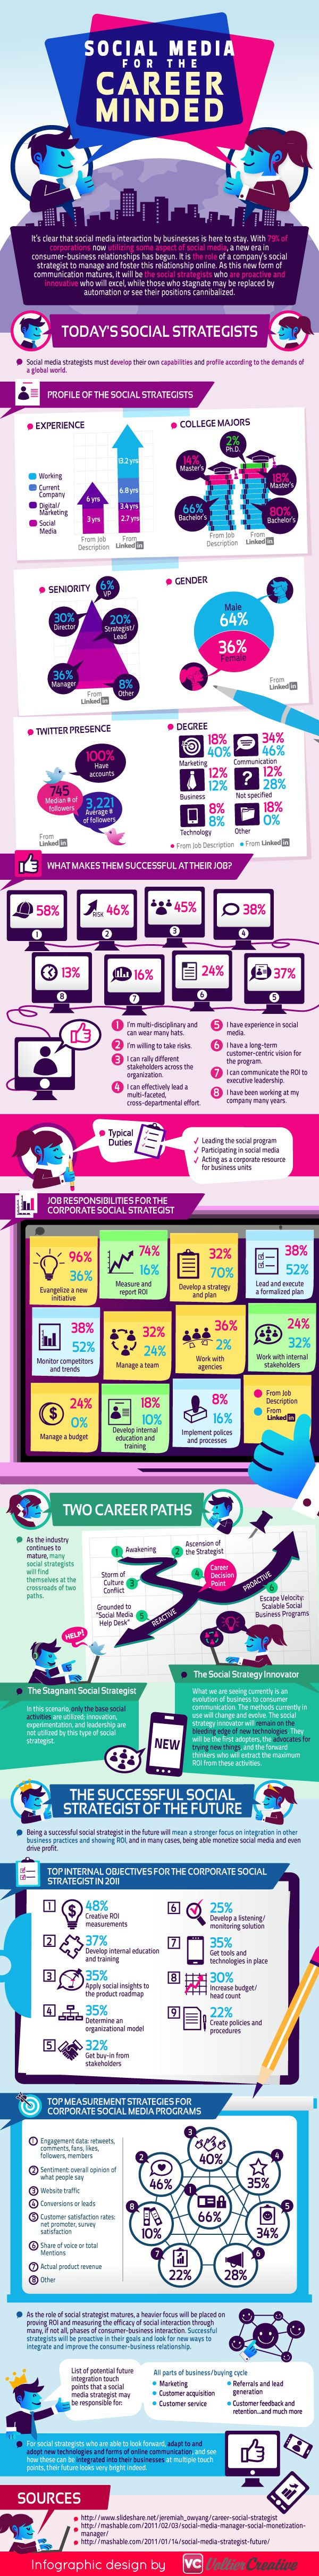 Looking to break into a social media career? Here's pretty much everything you need to know about the job and the people who do it every day. Nearly 80% of corporations use soci... http://www.intelisystems.com